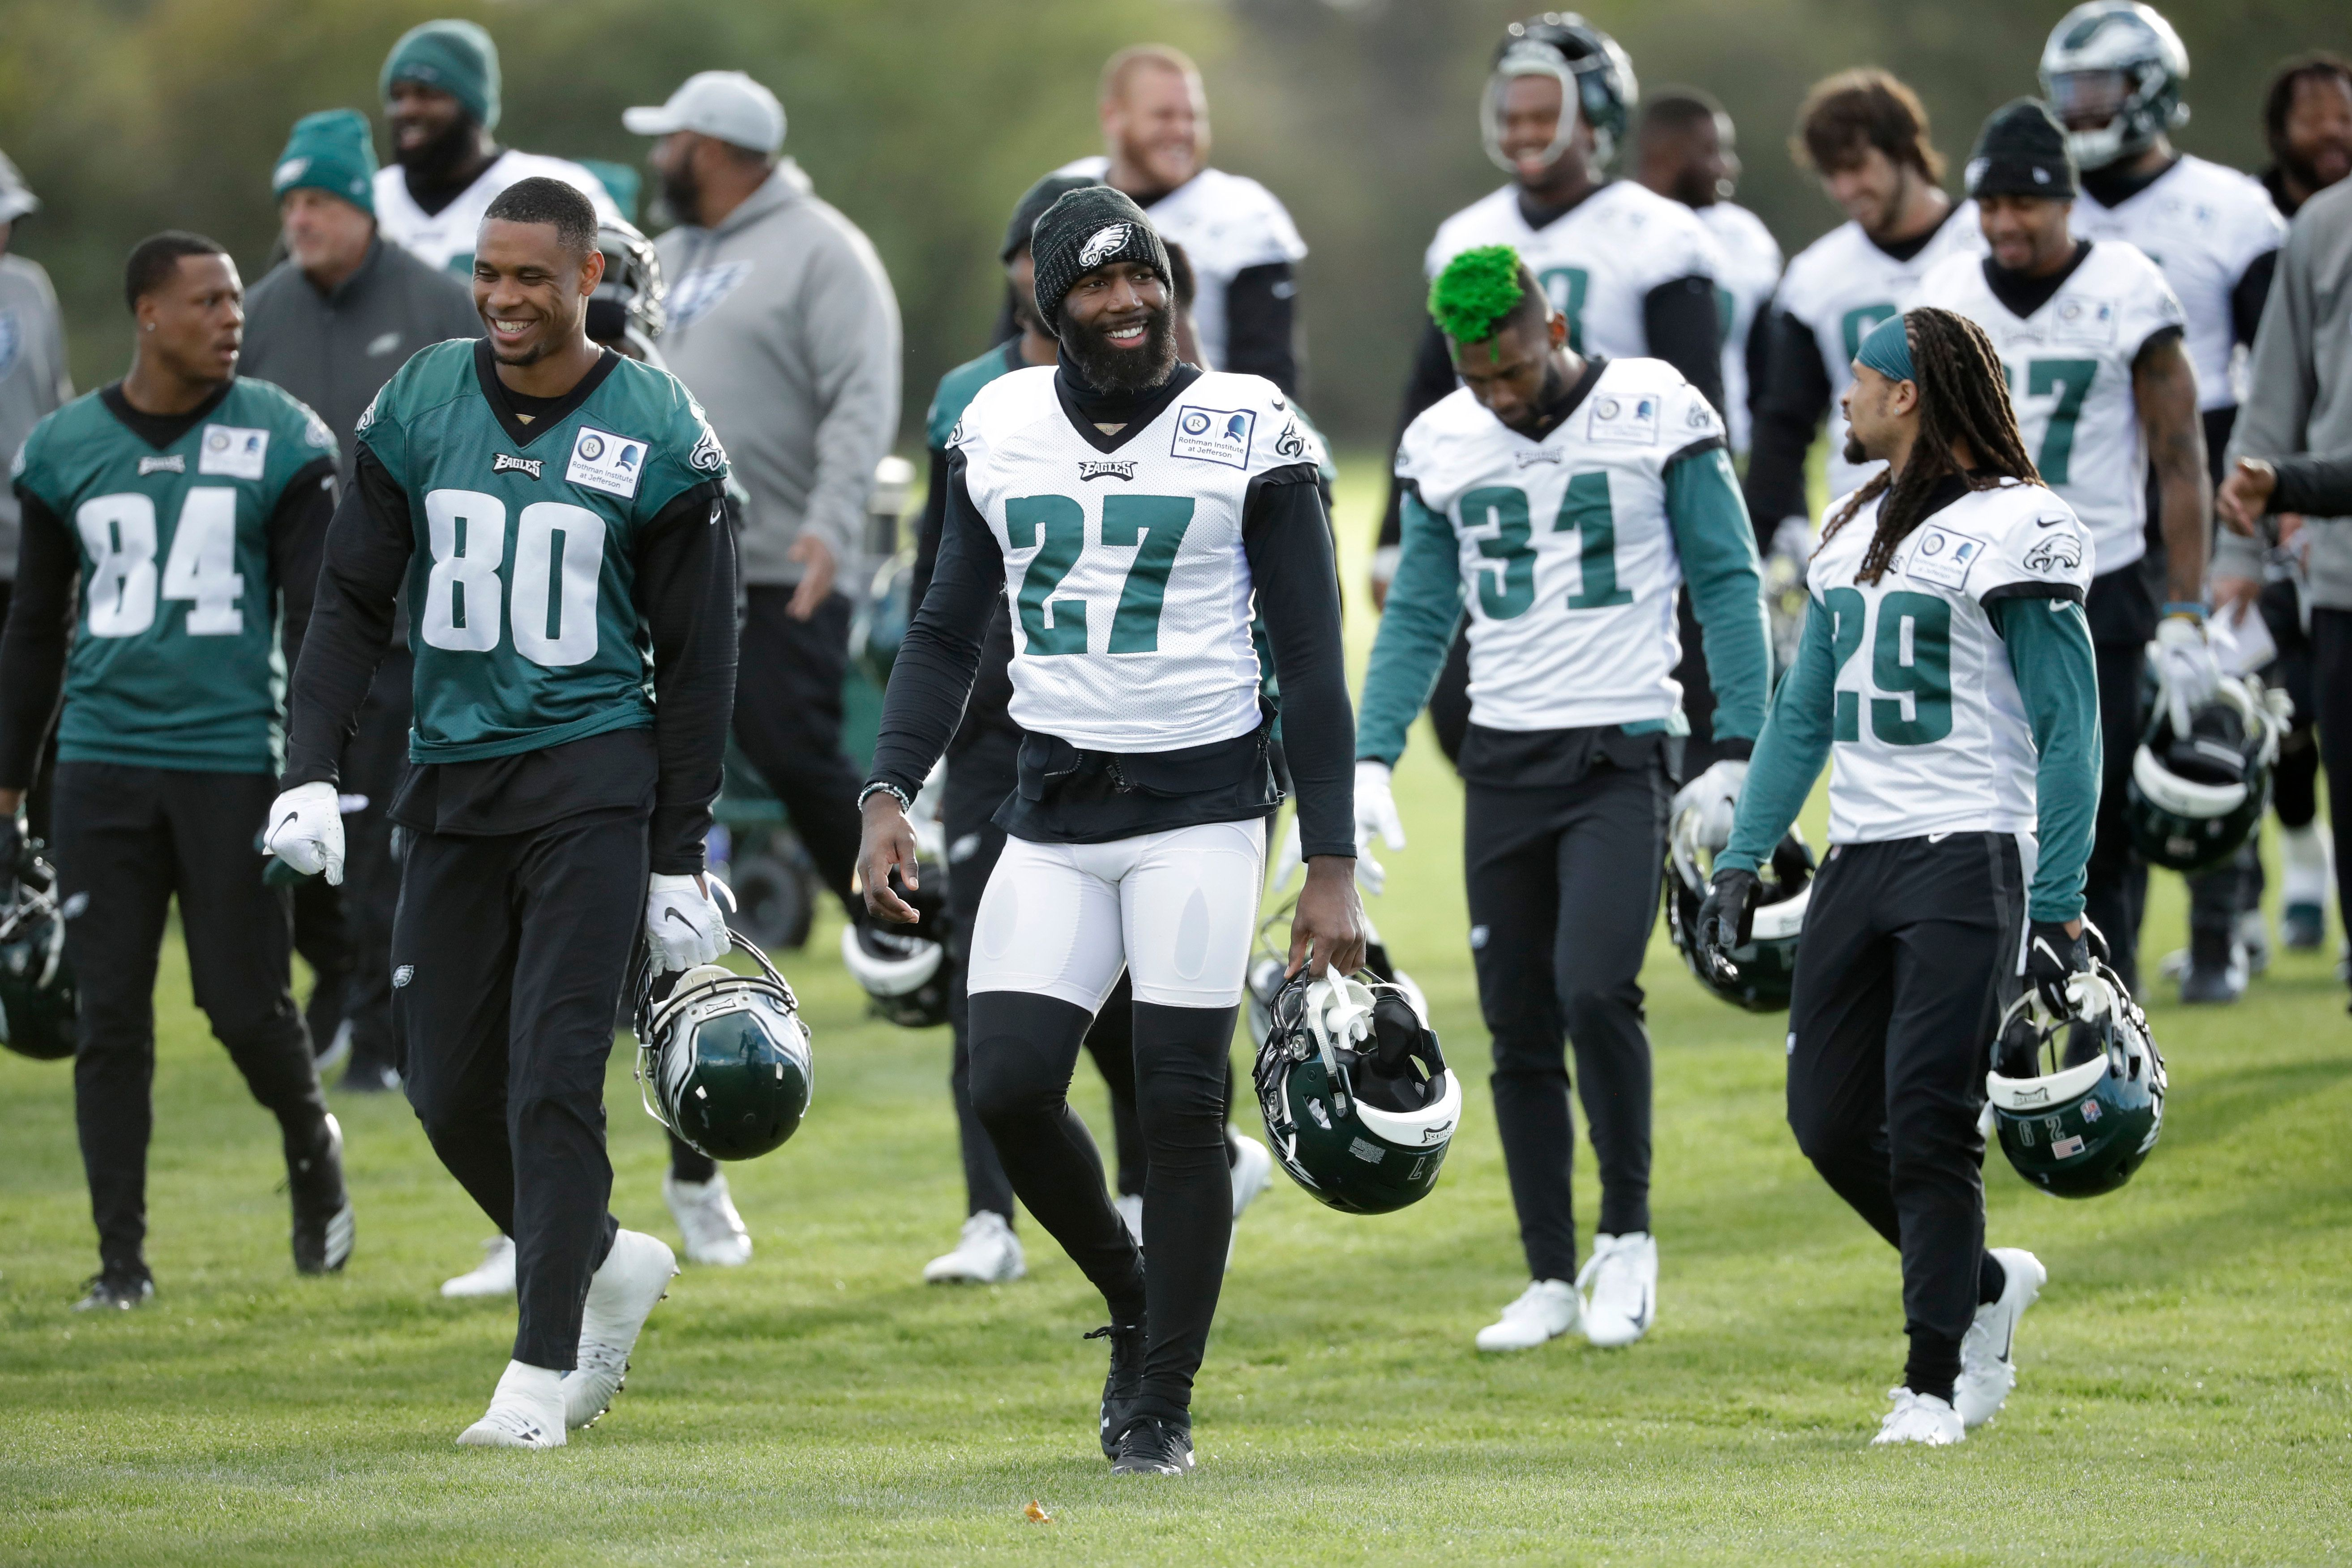 Philadelphia Eagles Bailed 9 People From Jail Using Social Justice